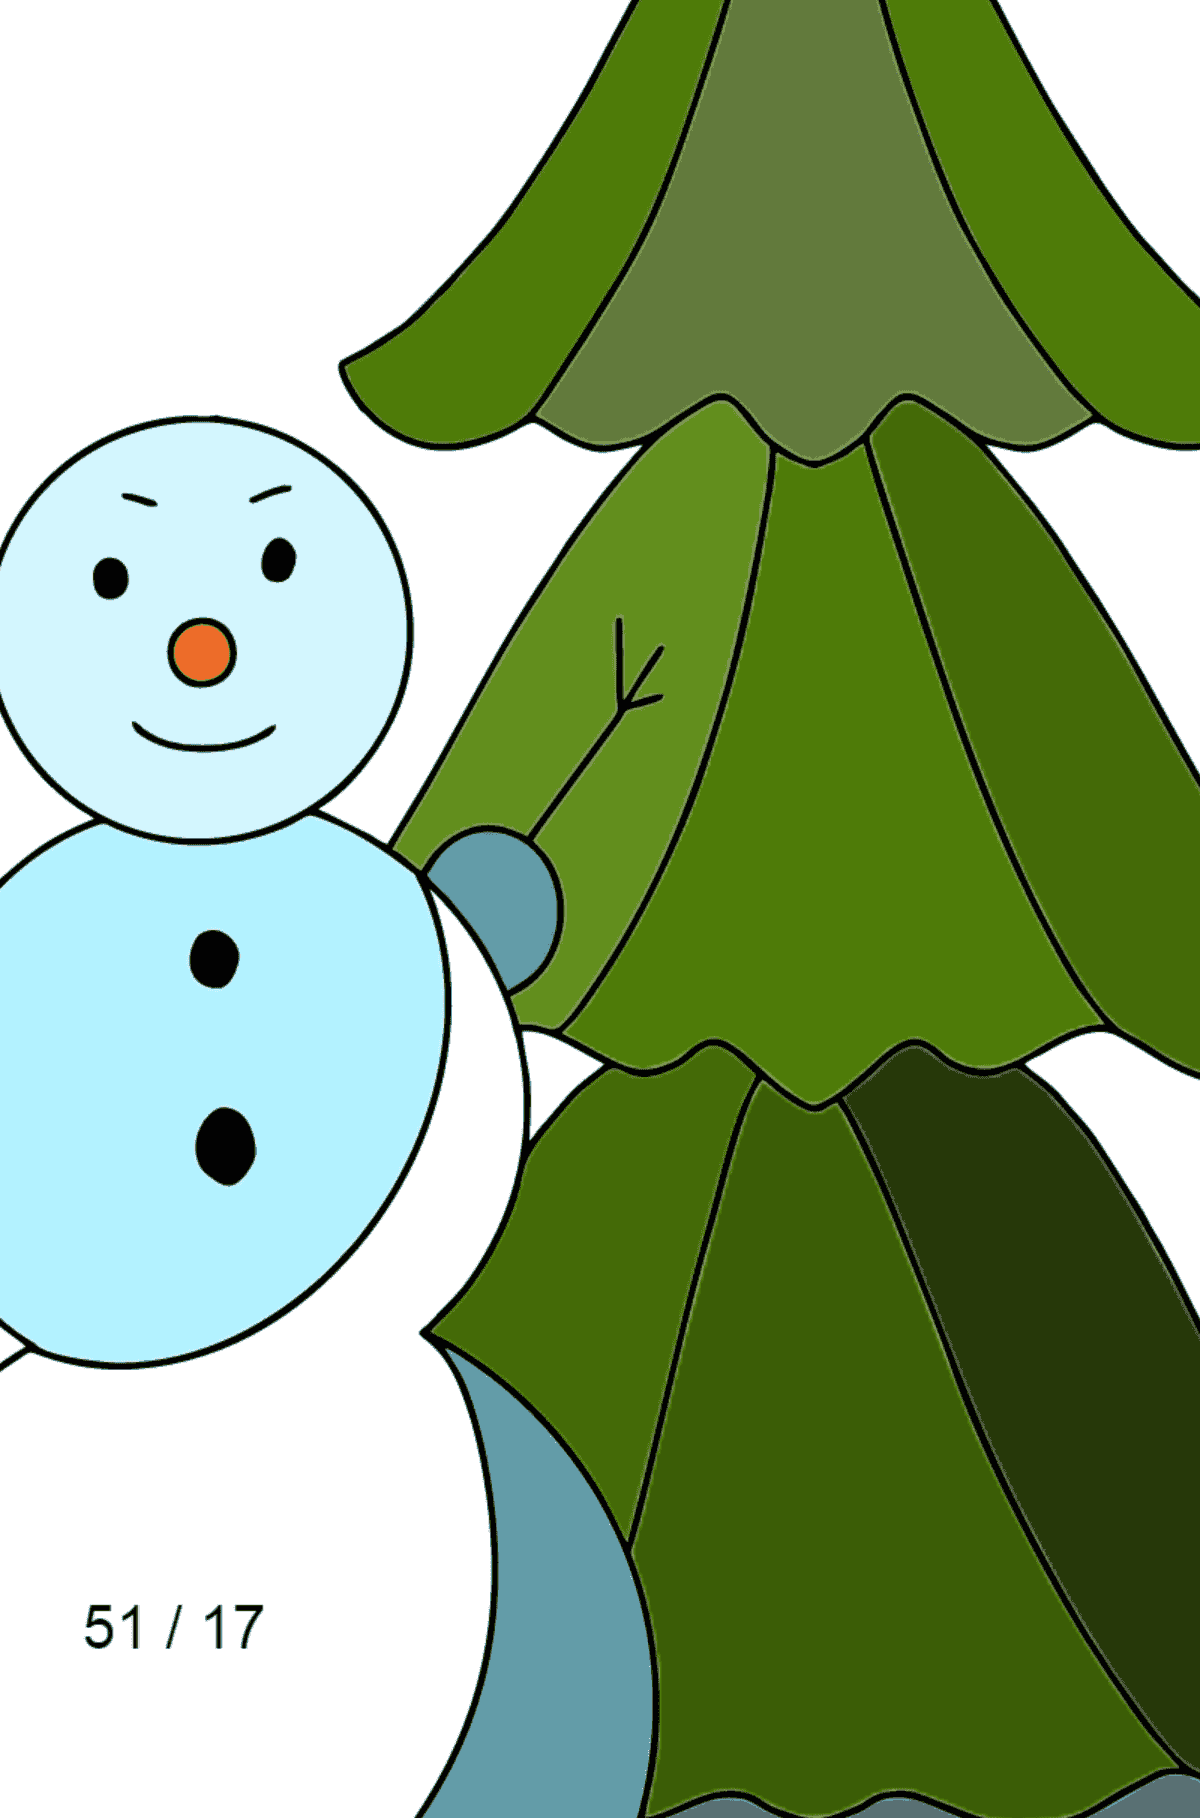 Winter Coloring Page - A Snowman with a Beautiful Christmas Tree for Children  - Color by Number Division